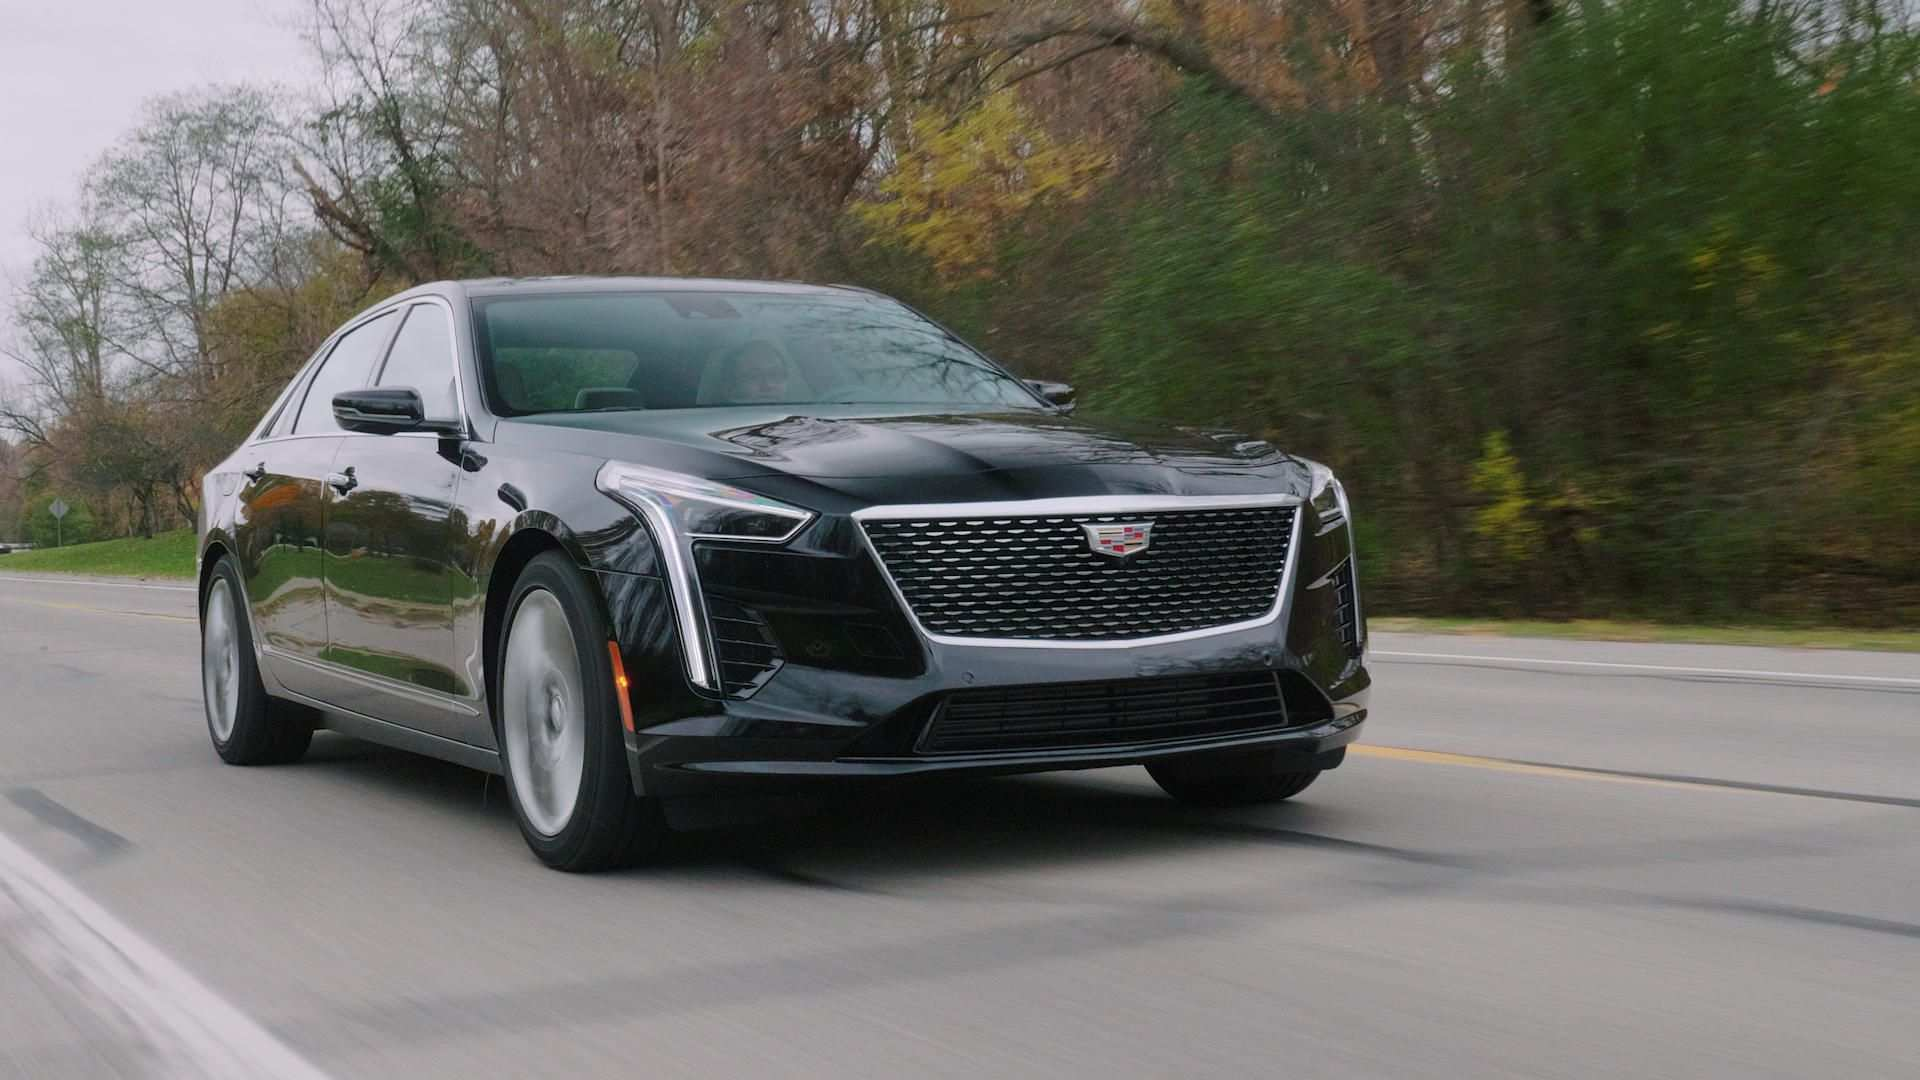 26 New 2019 Cadillac Ct6 Release Date for 2019 Cadillac Ct6